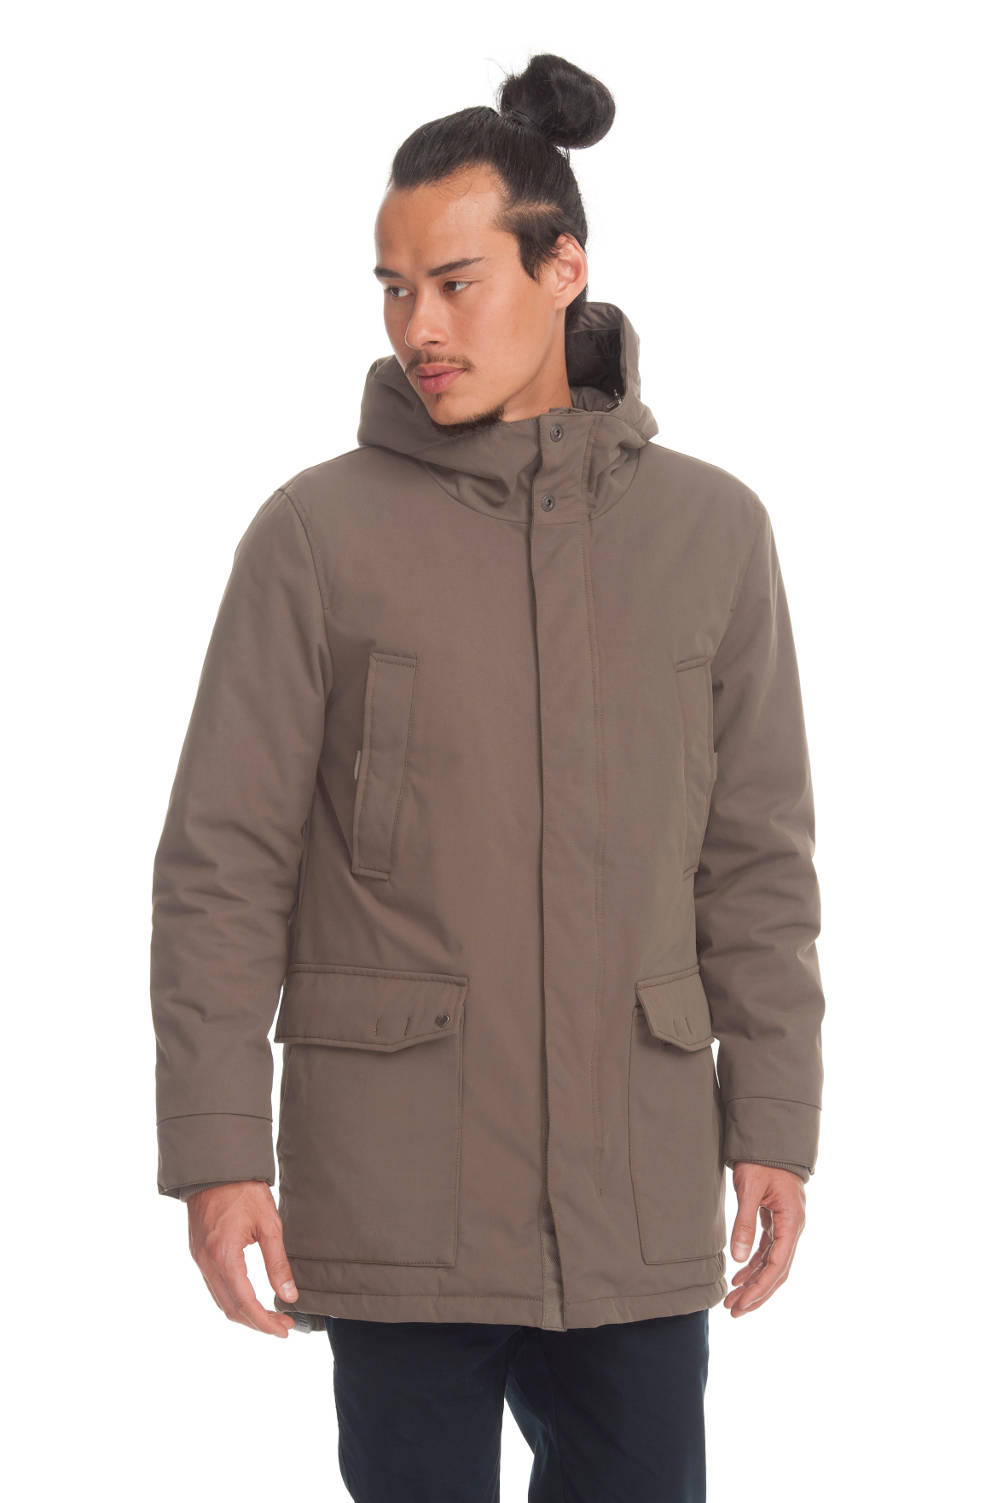 Herrenjacke Ragwear Kramer ash brown